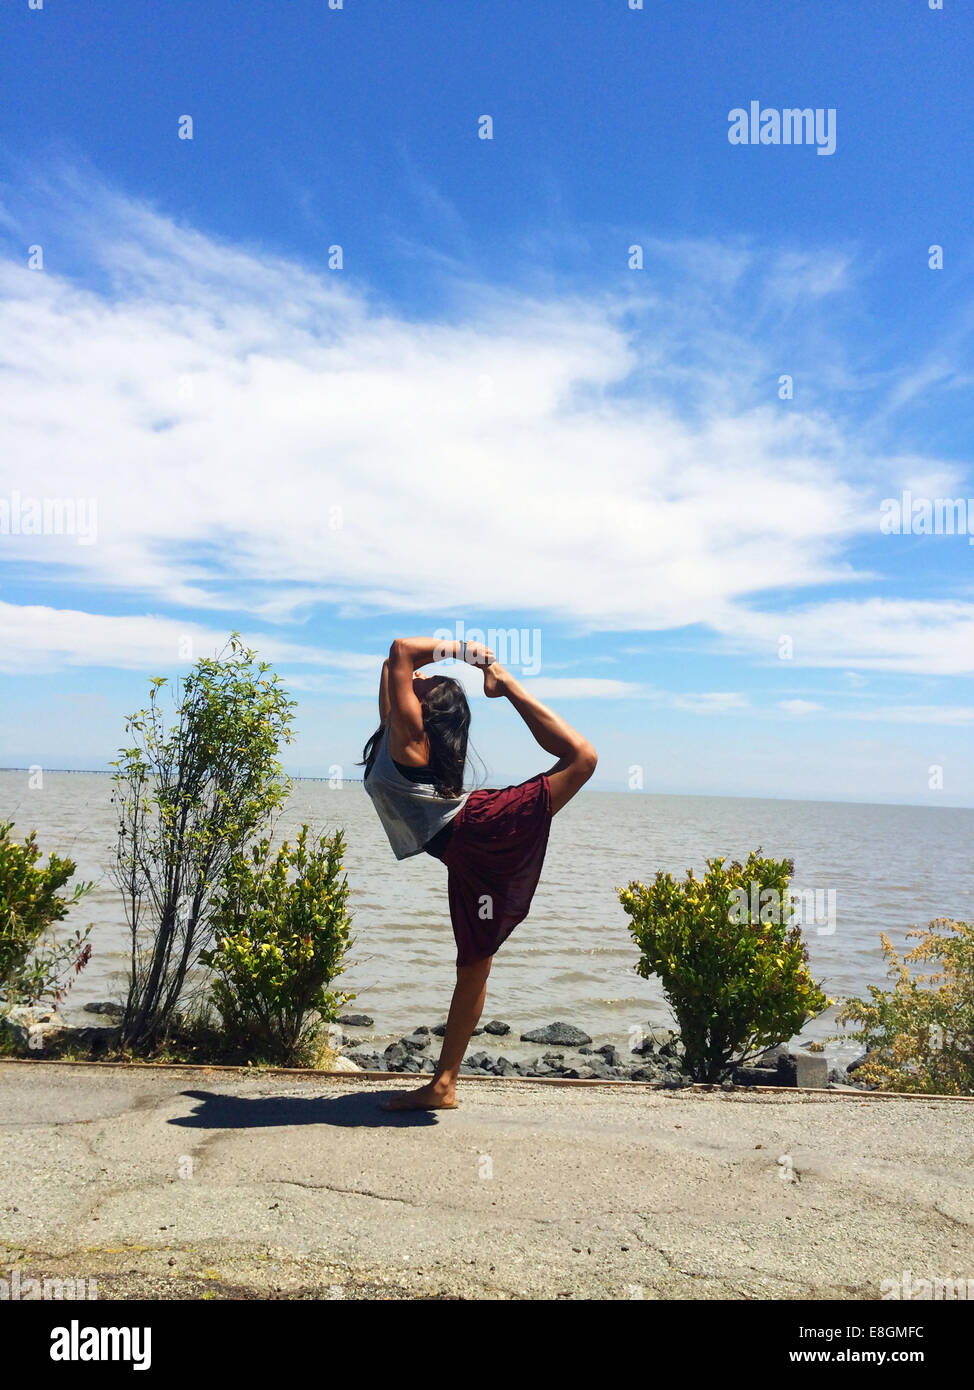 Girl doing standing bow pulling yoga pose on beach - Stock Image